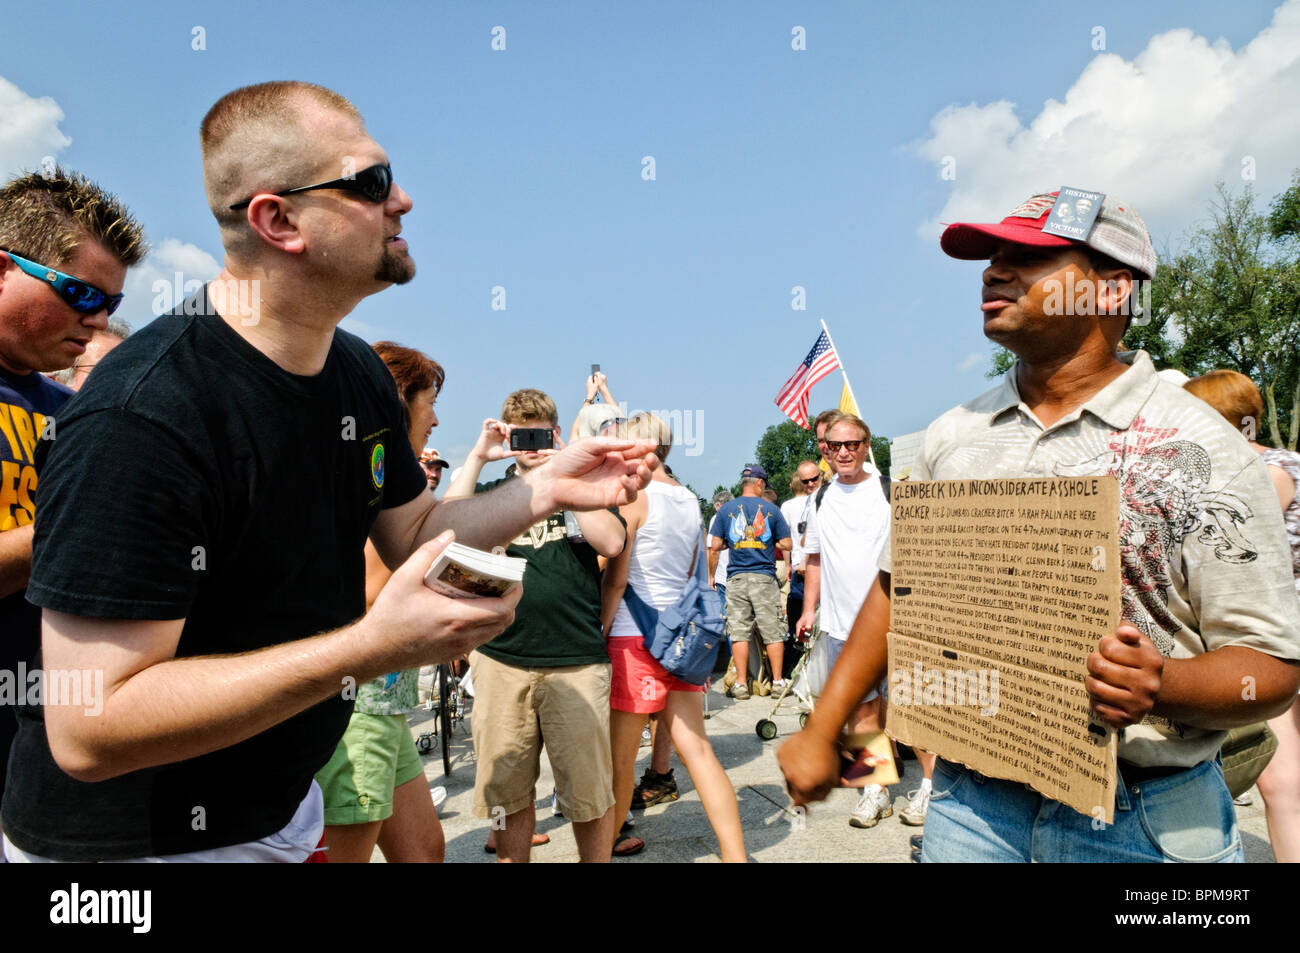 WASHINGTON DC, USA - Disagreement between pro- and anti- rally attendees. Conservative television commentator Glenn - Stock Image